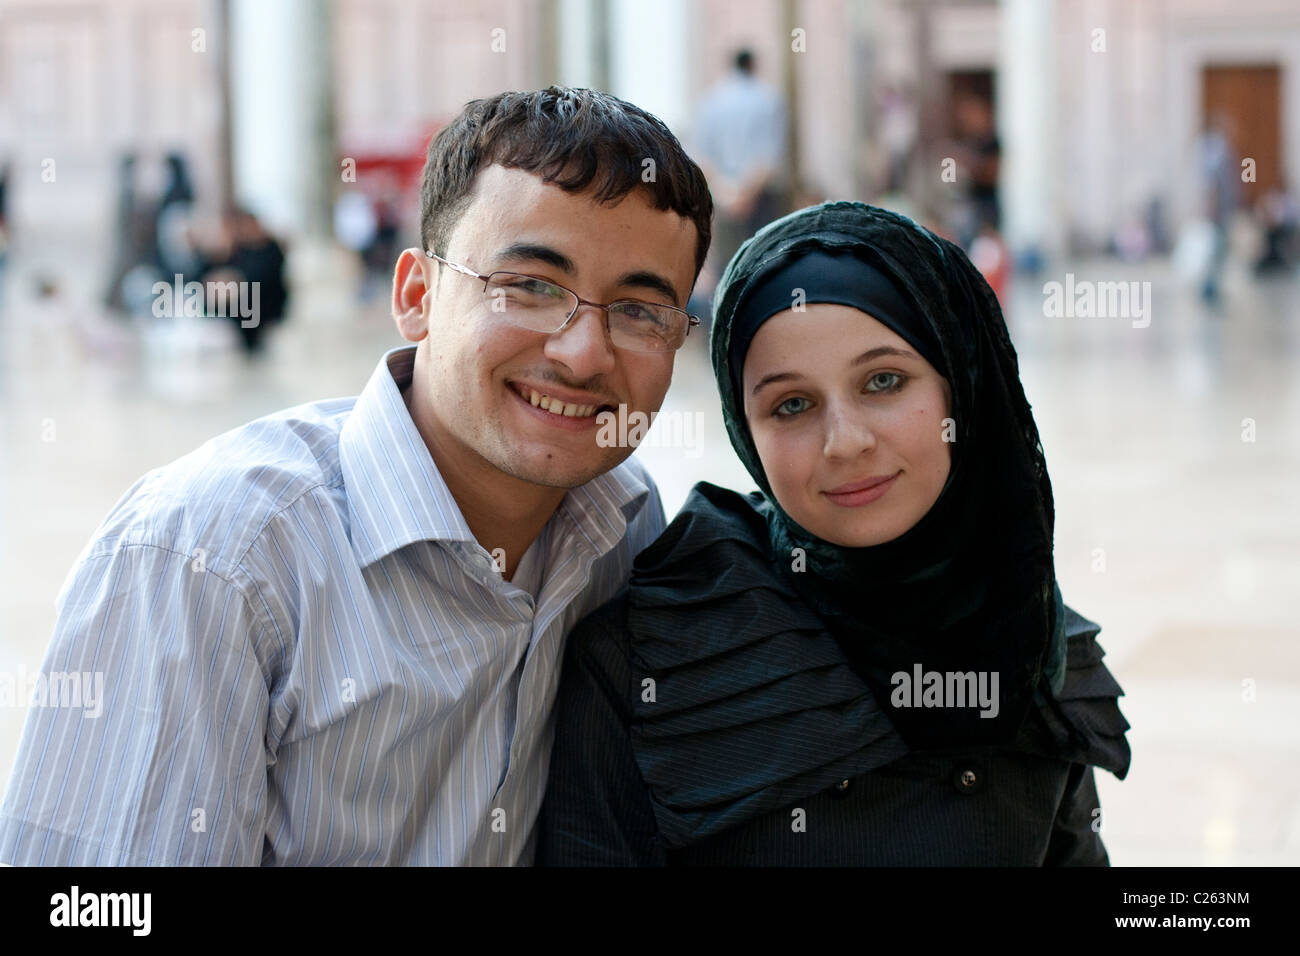 Arab mature couple